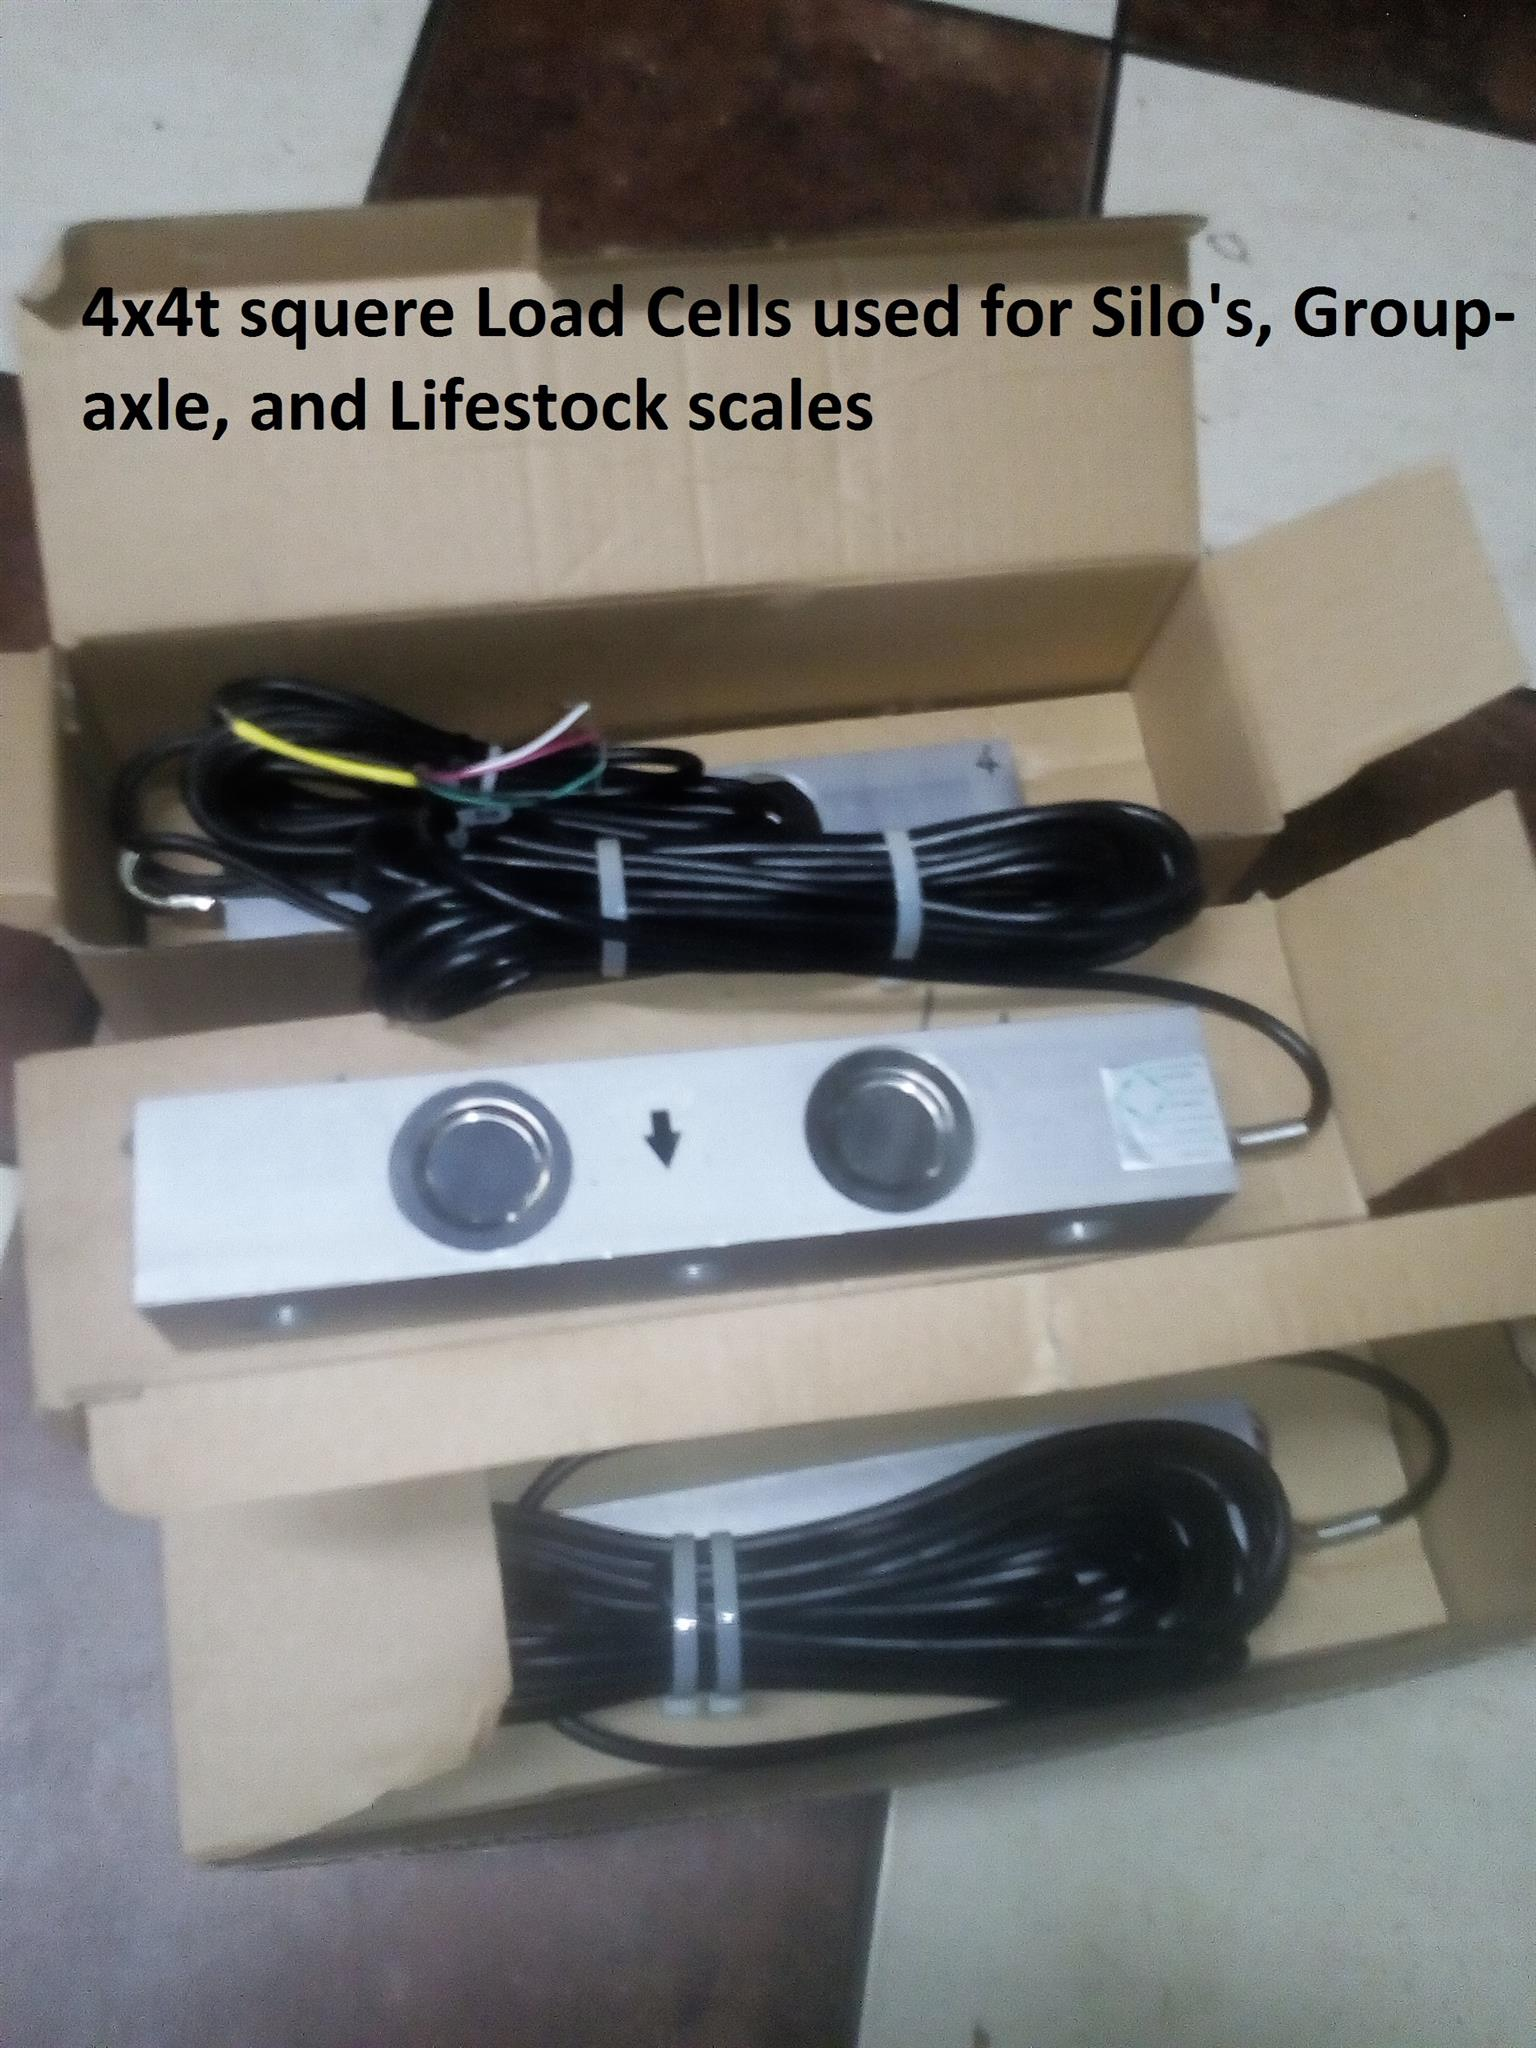 Silo group axle, platform scale lifestock scale 4t-6t loadcells  Micro Indicator A12E display instr